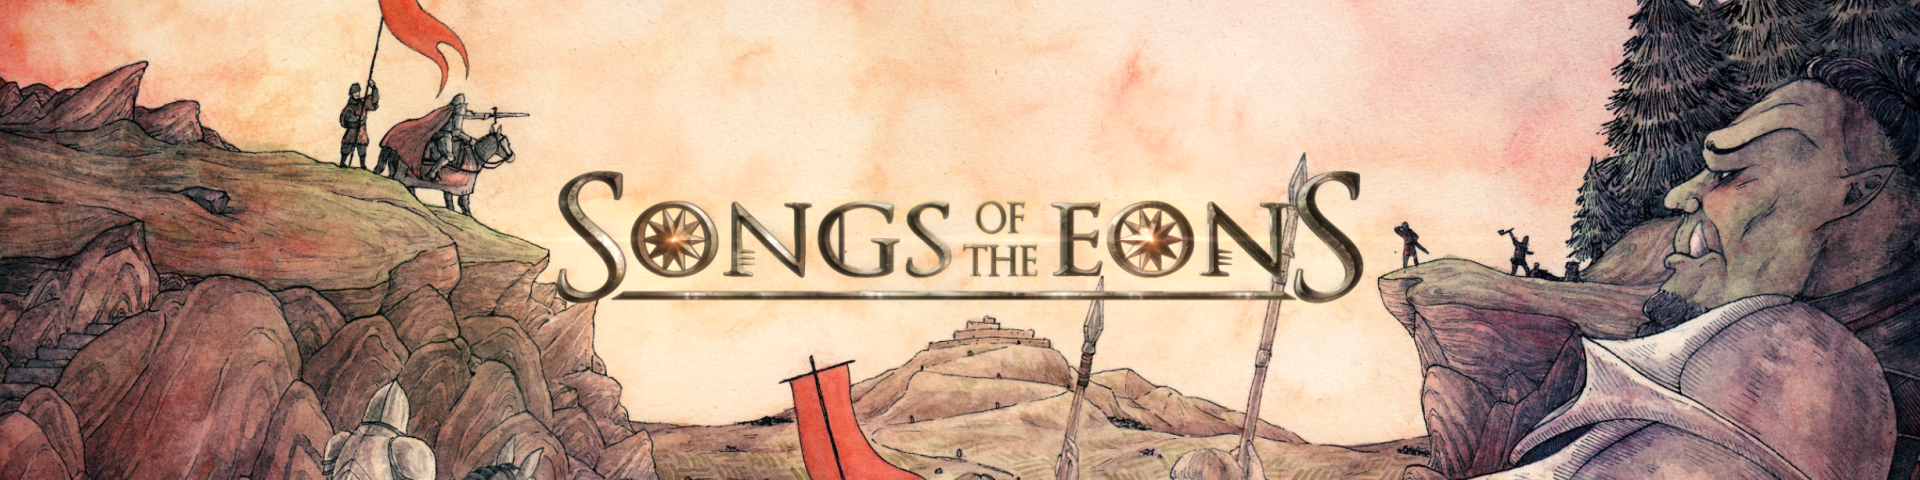 Songs of the Eons, 0.1.9